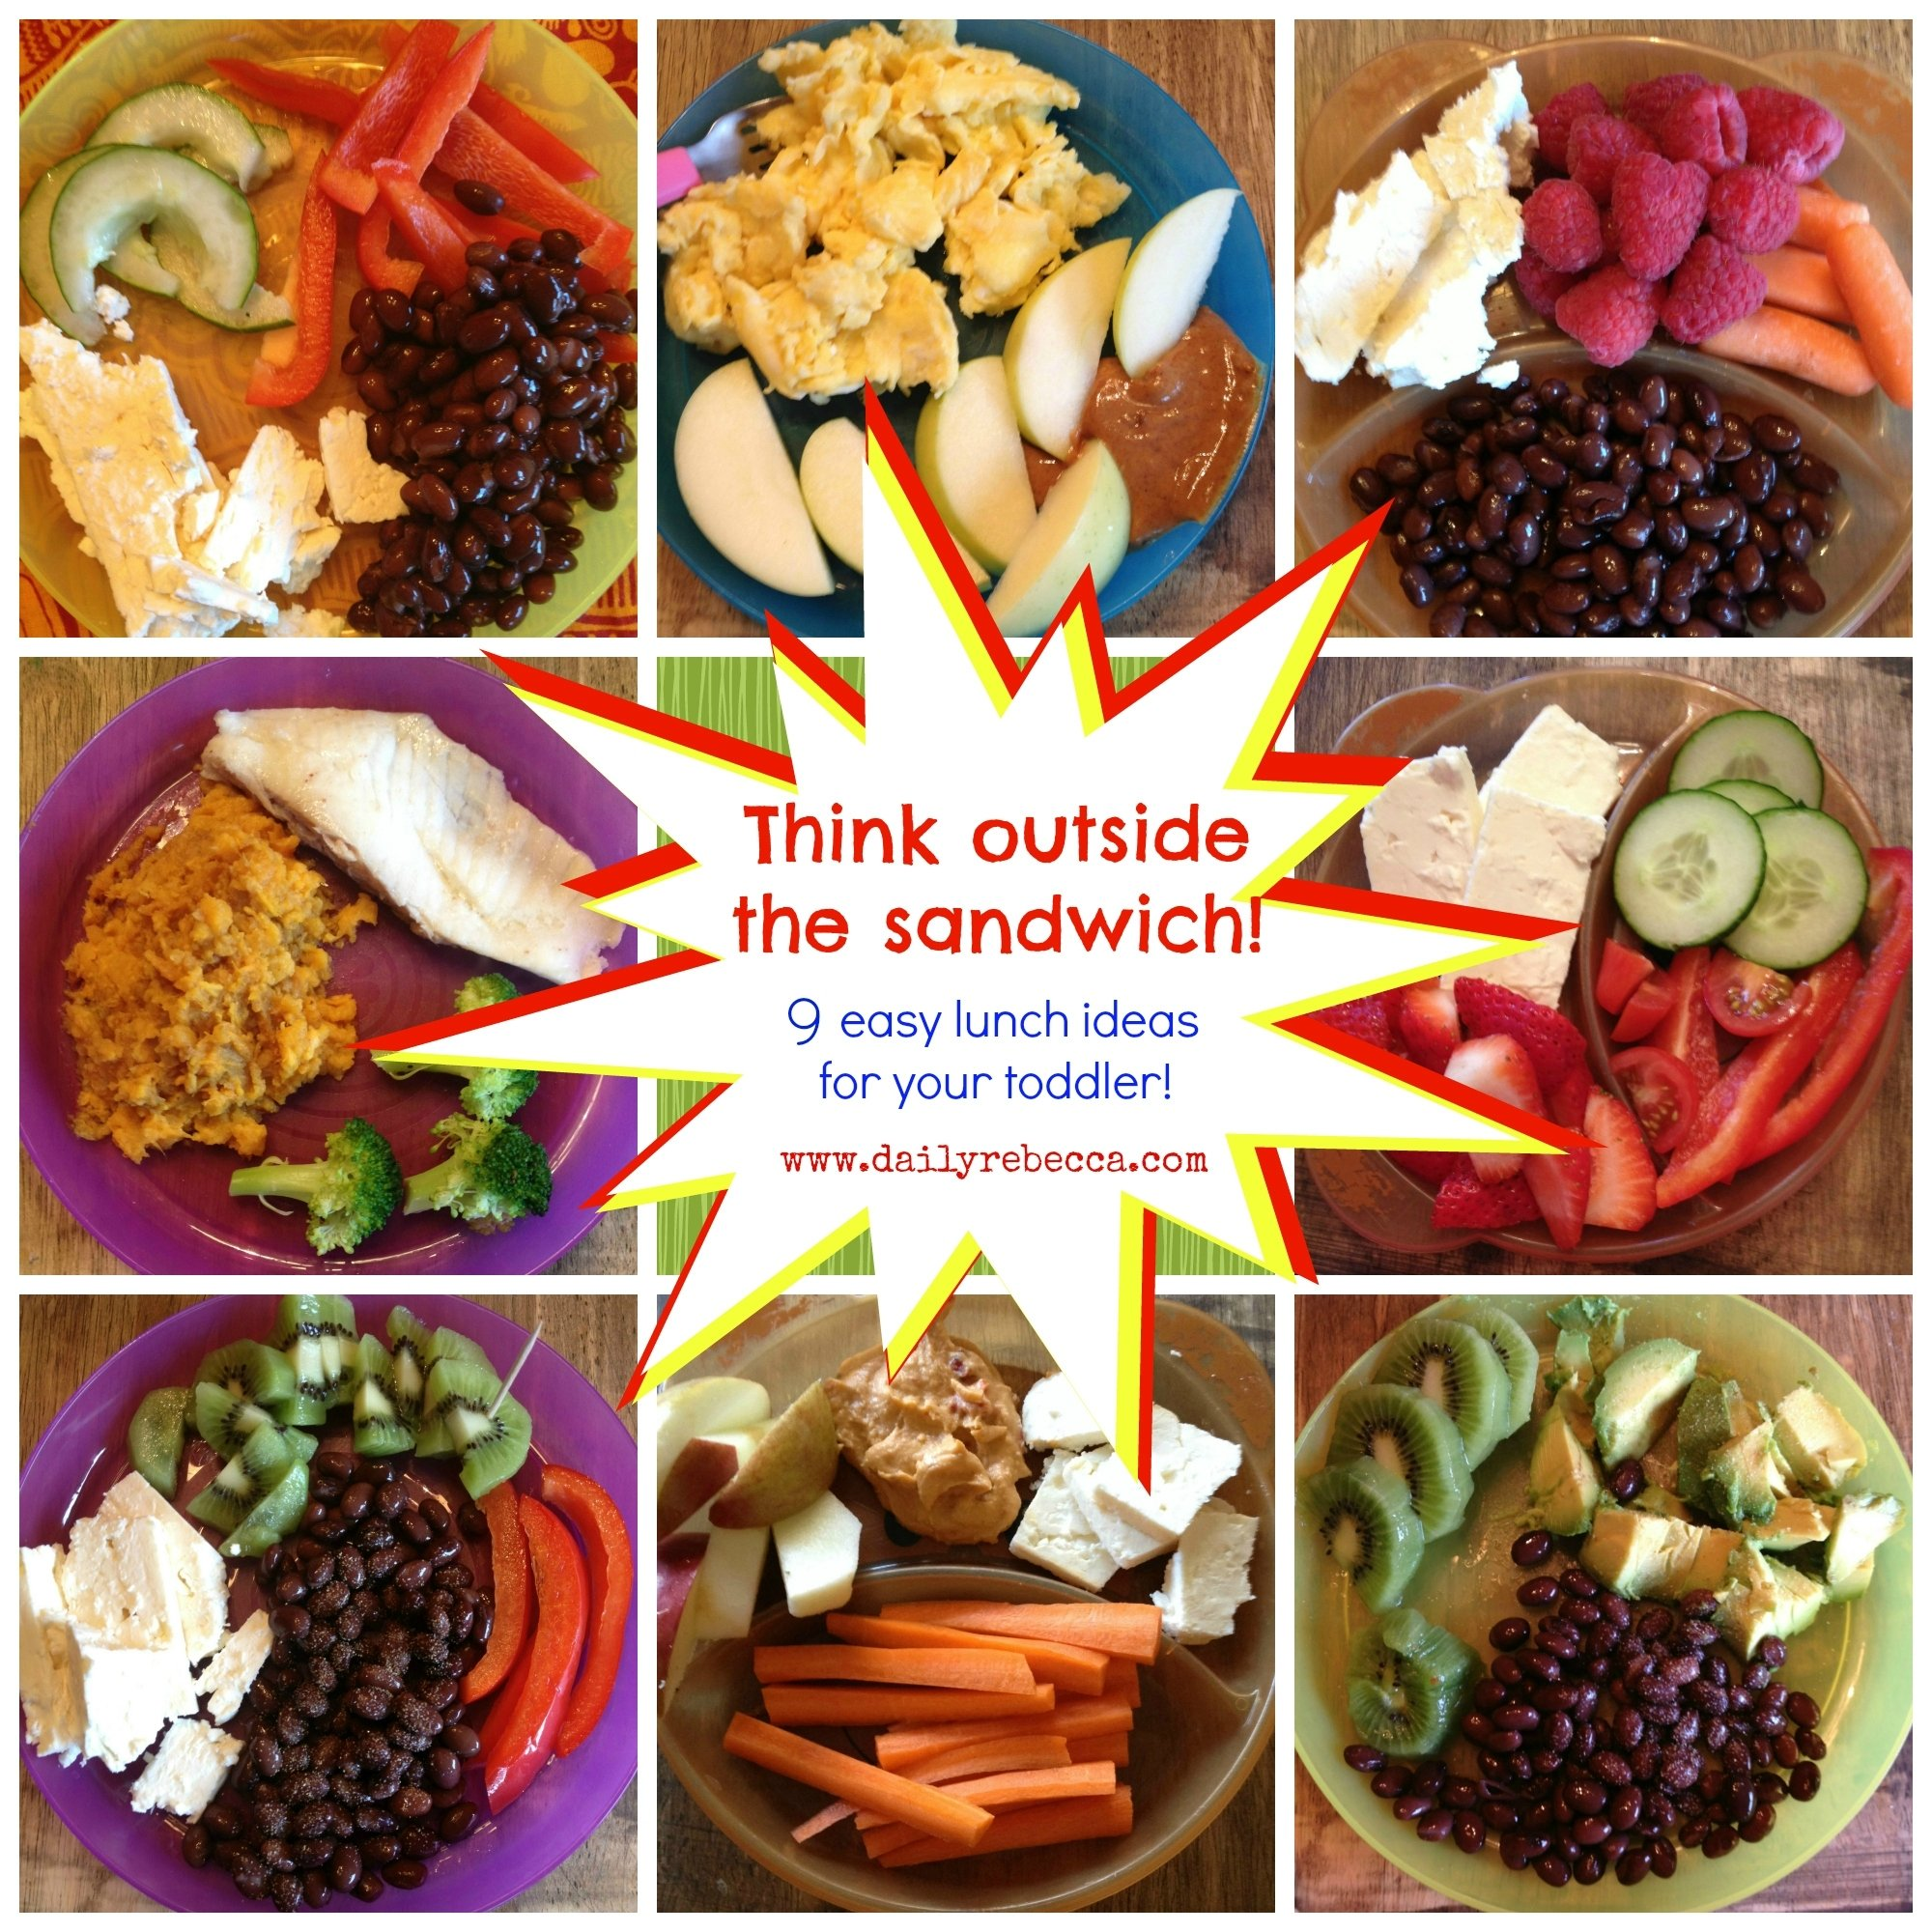 10 Most Recommended Healthy Breakfast Ideas For Toddlers think outside the sandwich 9 easy lunch ideas for your toddler 4 2020